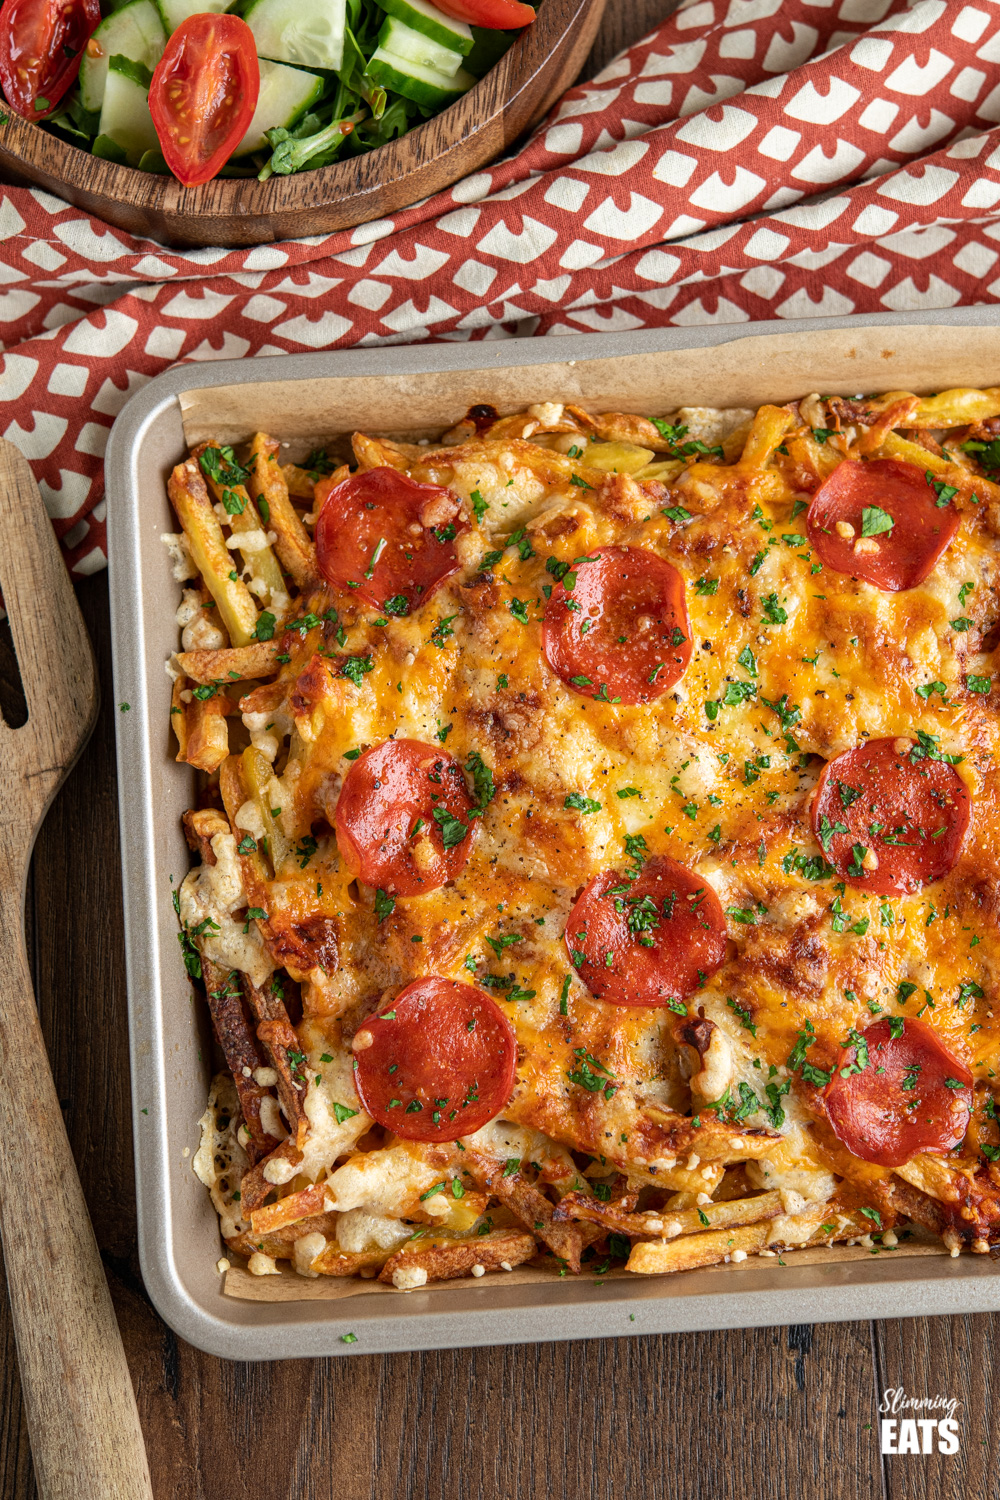 Cheesy Oven Baked Pizza Fries on baking sheet with wooden bowl filled with mixed salad